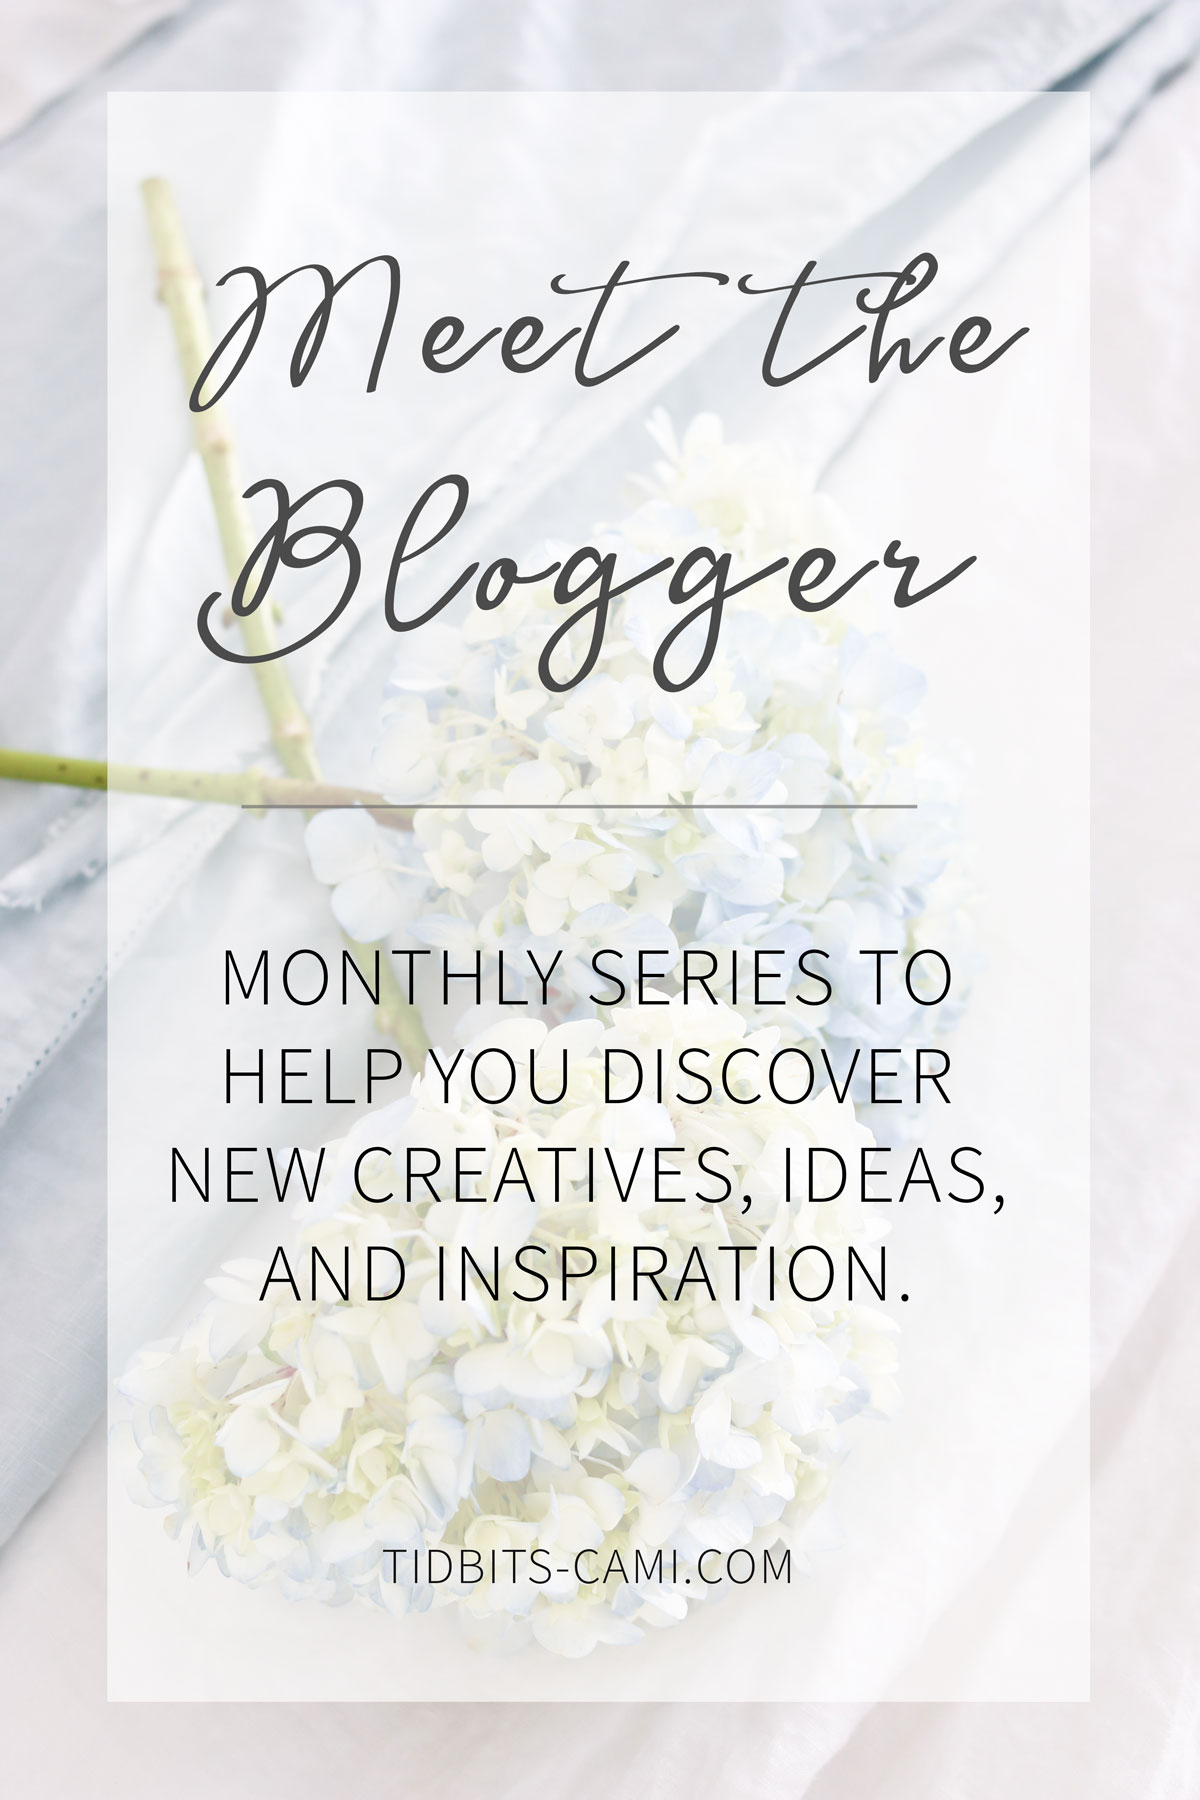 Meet the Blogger - a monthly series to help you discover new creatives, ideas and inspiration.